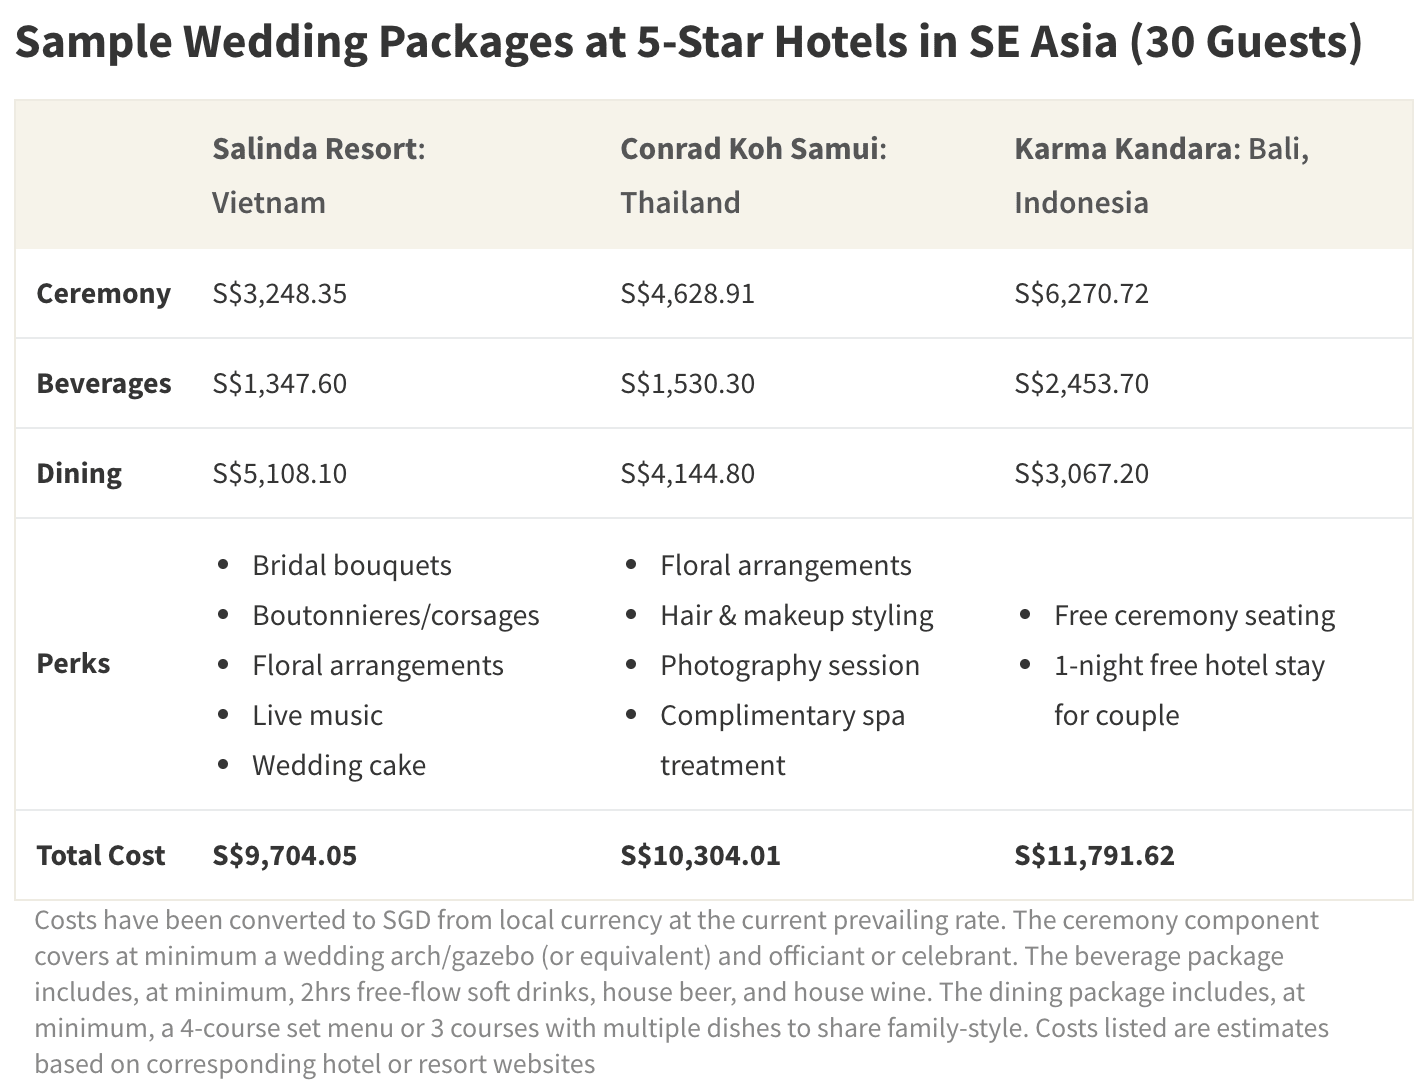 Destination wedding packages are often comprised of ceremony, beverage, and dining elements, which altogether are generally cheaper than Singaporean banquet fees